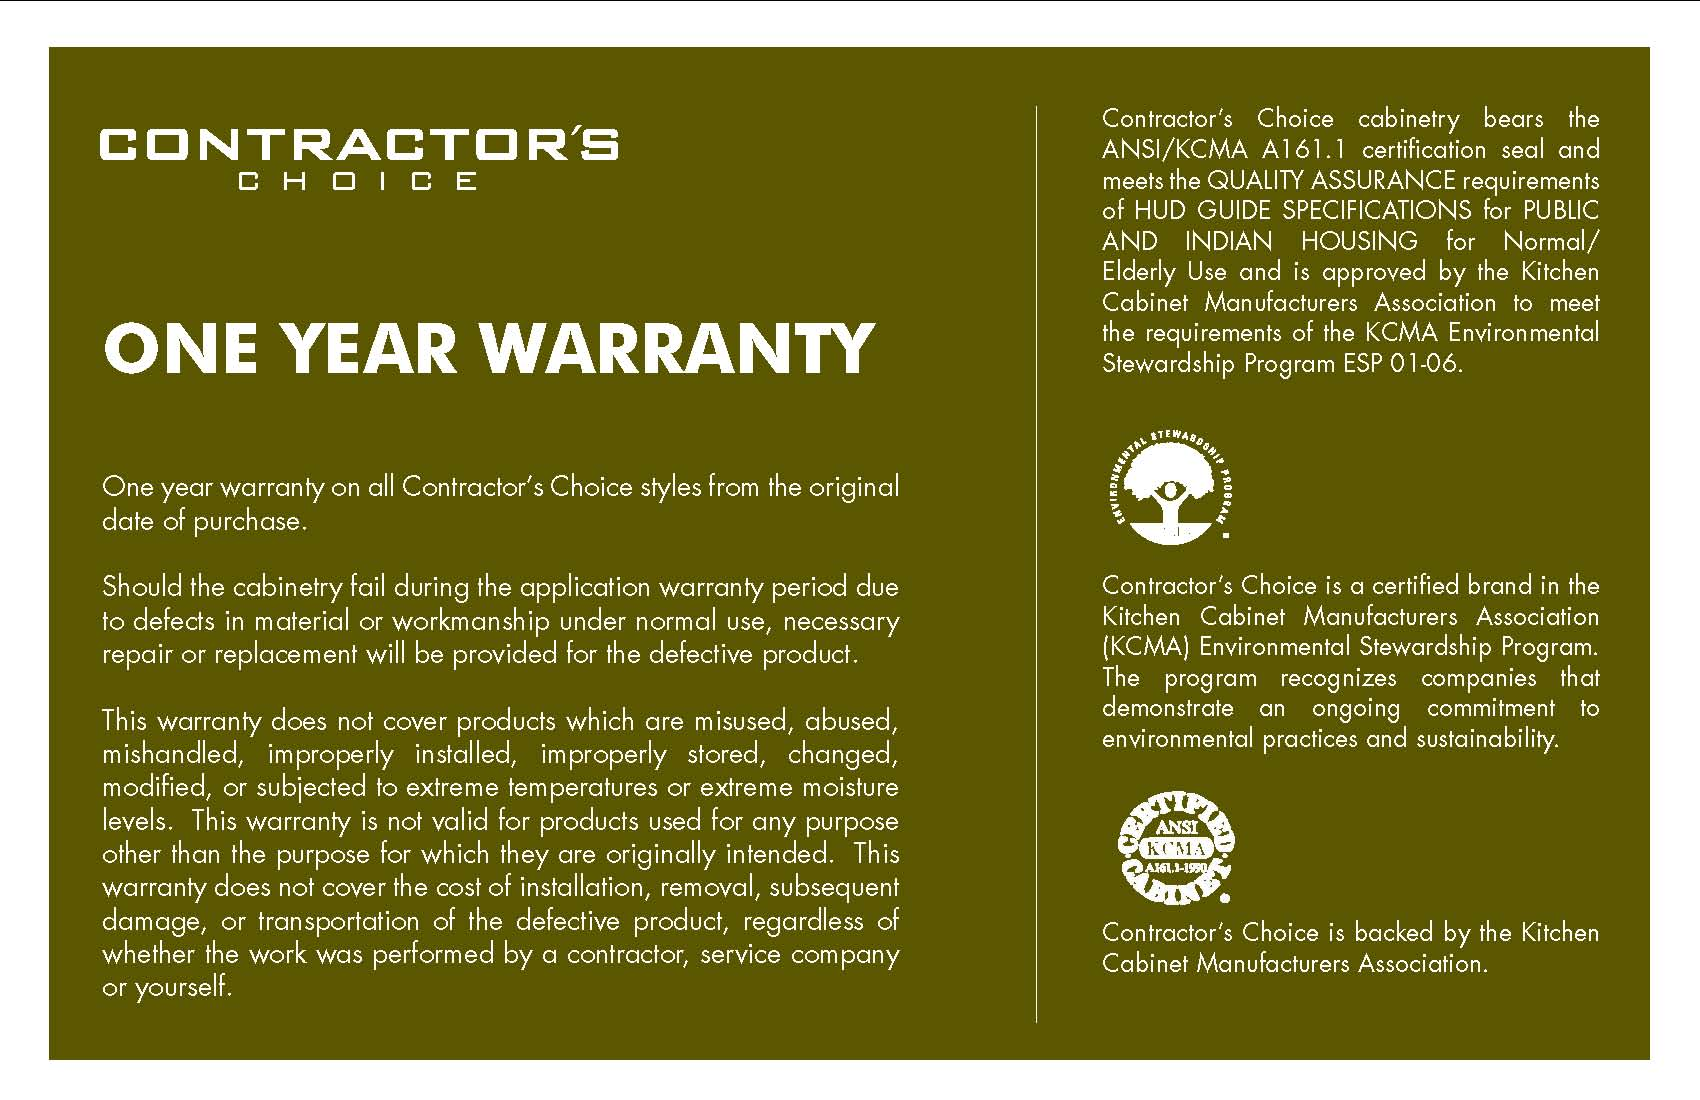 wolf contractors choice